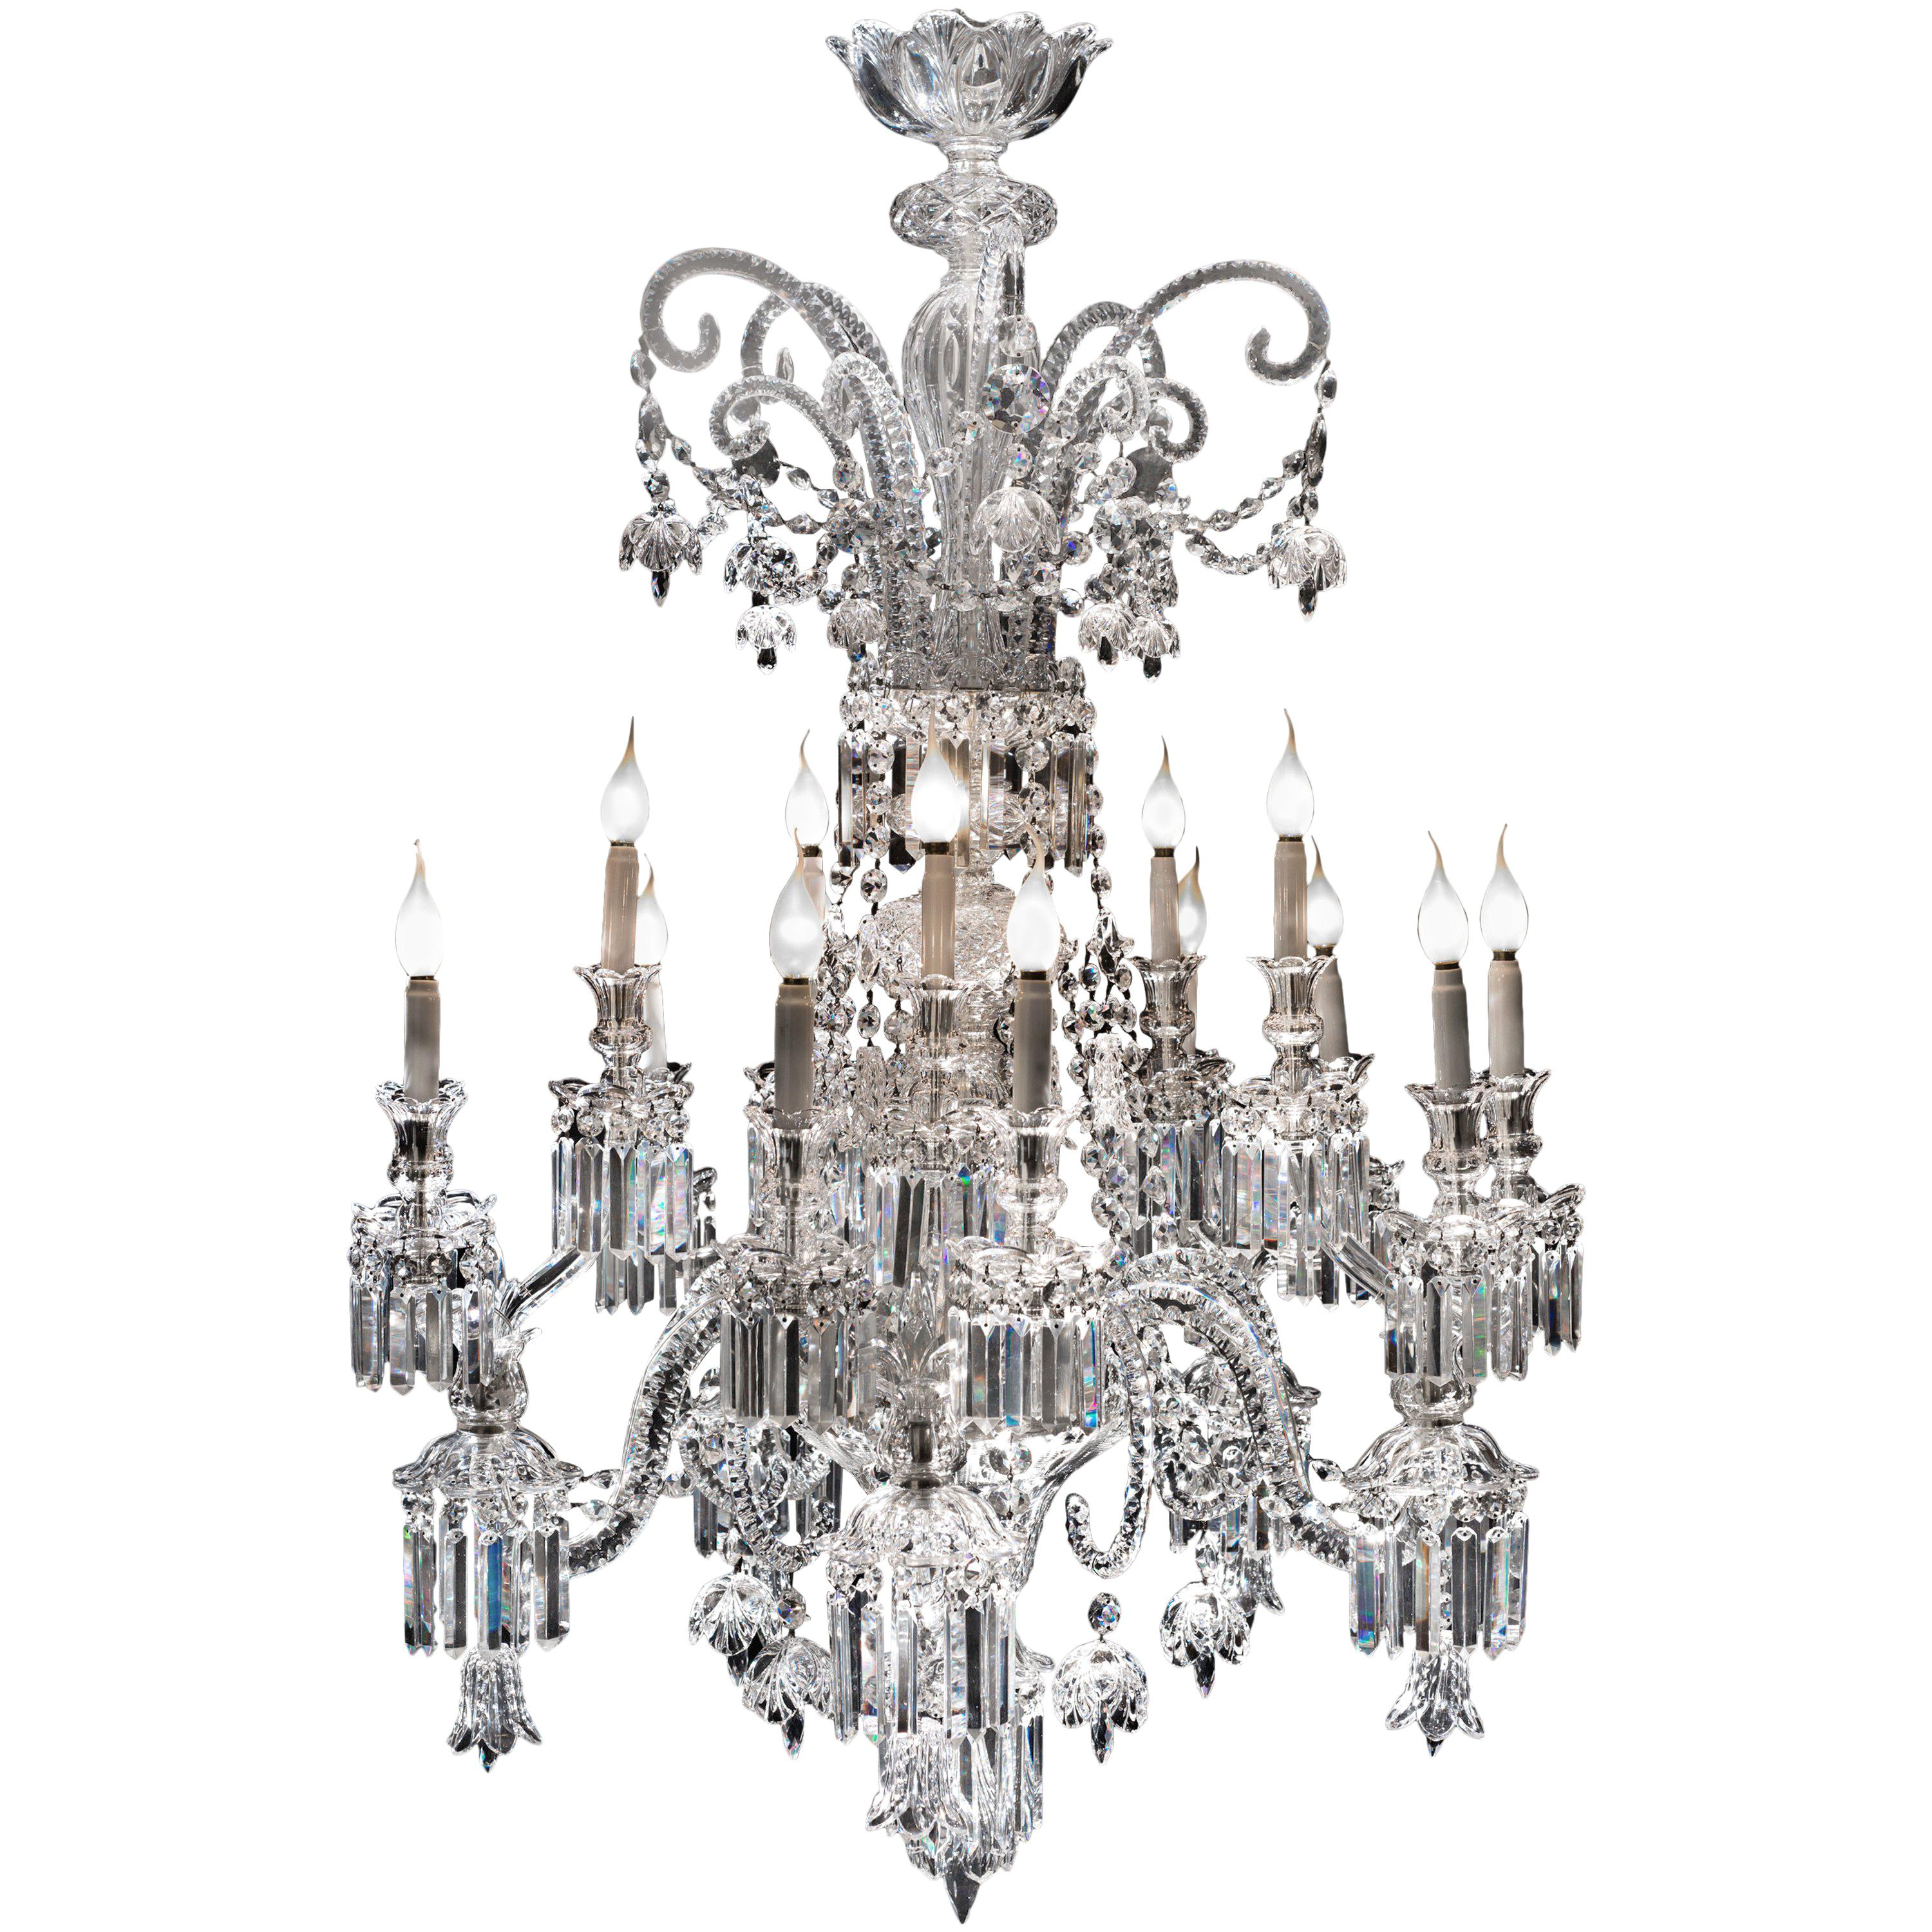 Baccarat Crystal Exceptional Chandelier  France, early 19th Century